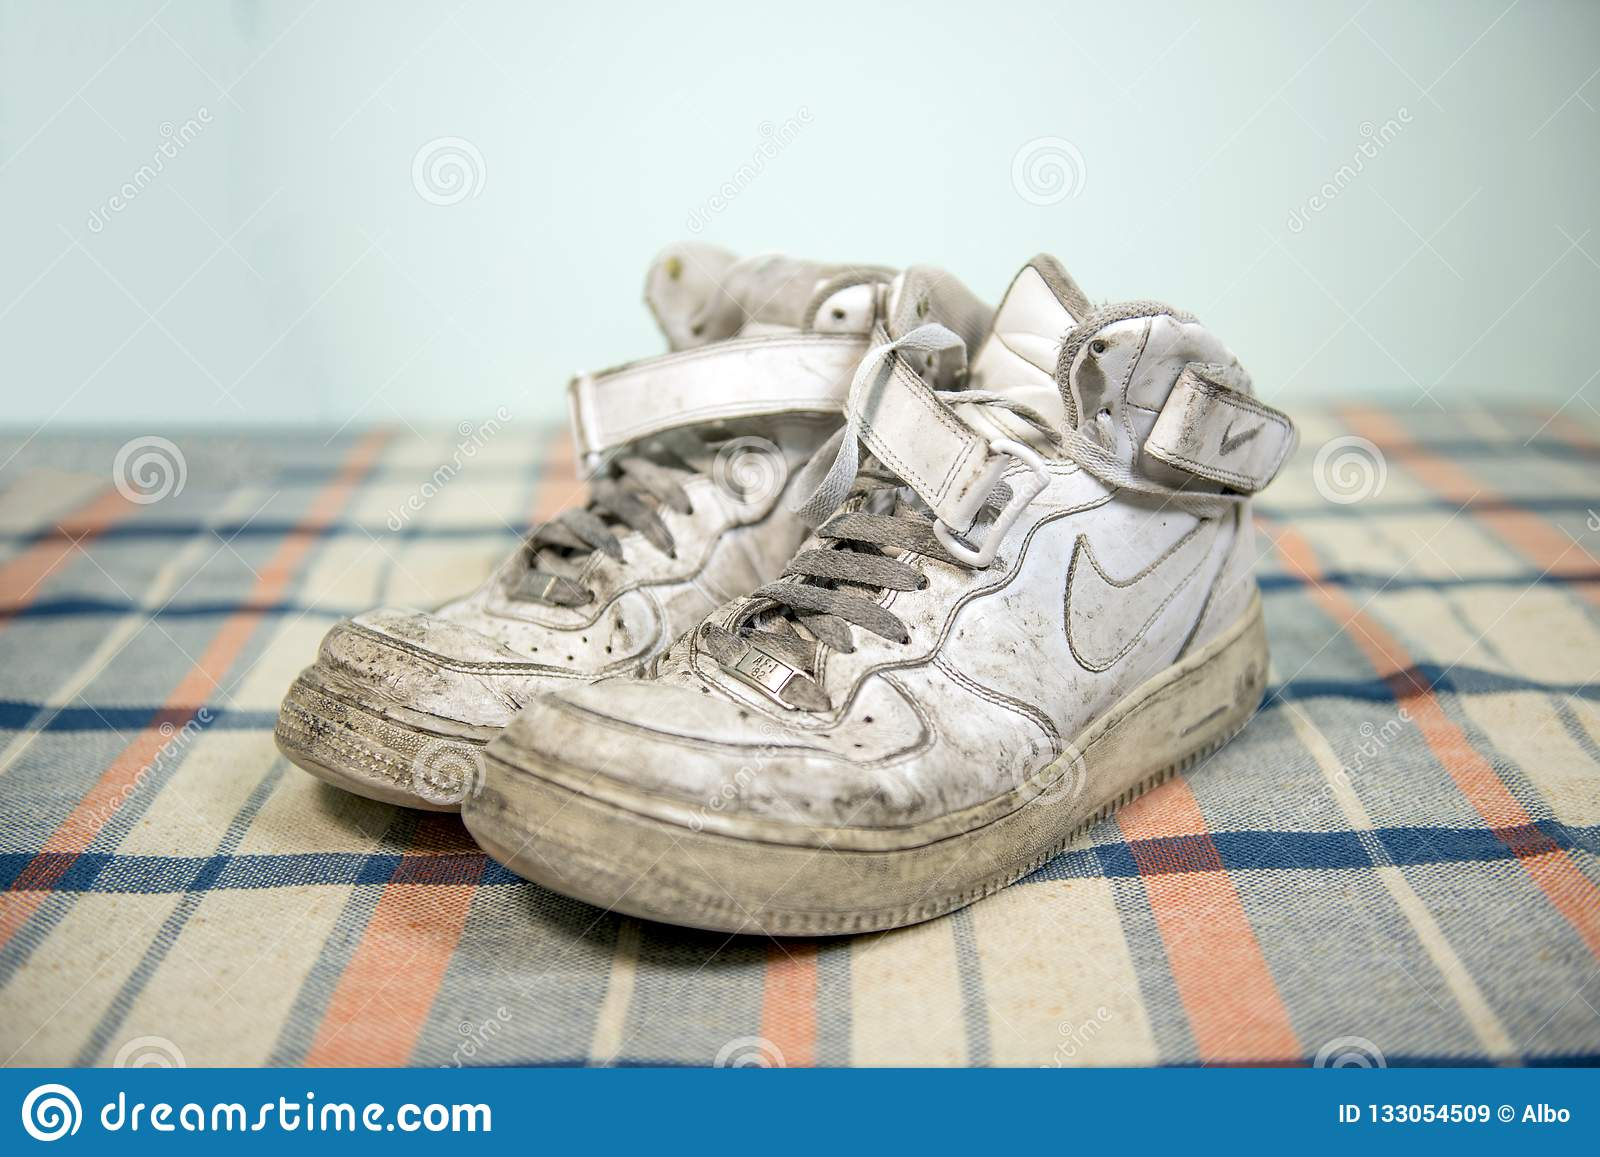 Nike Air Force One shoes editorial stock image. Image of